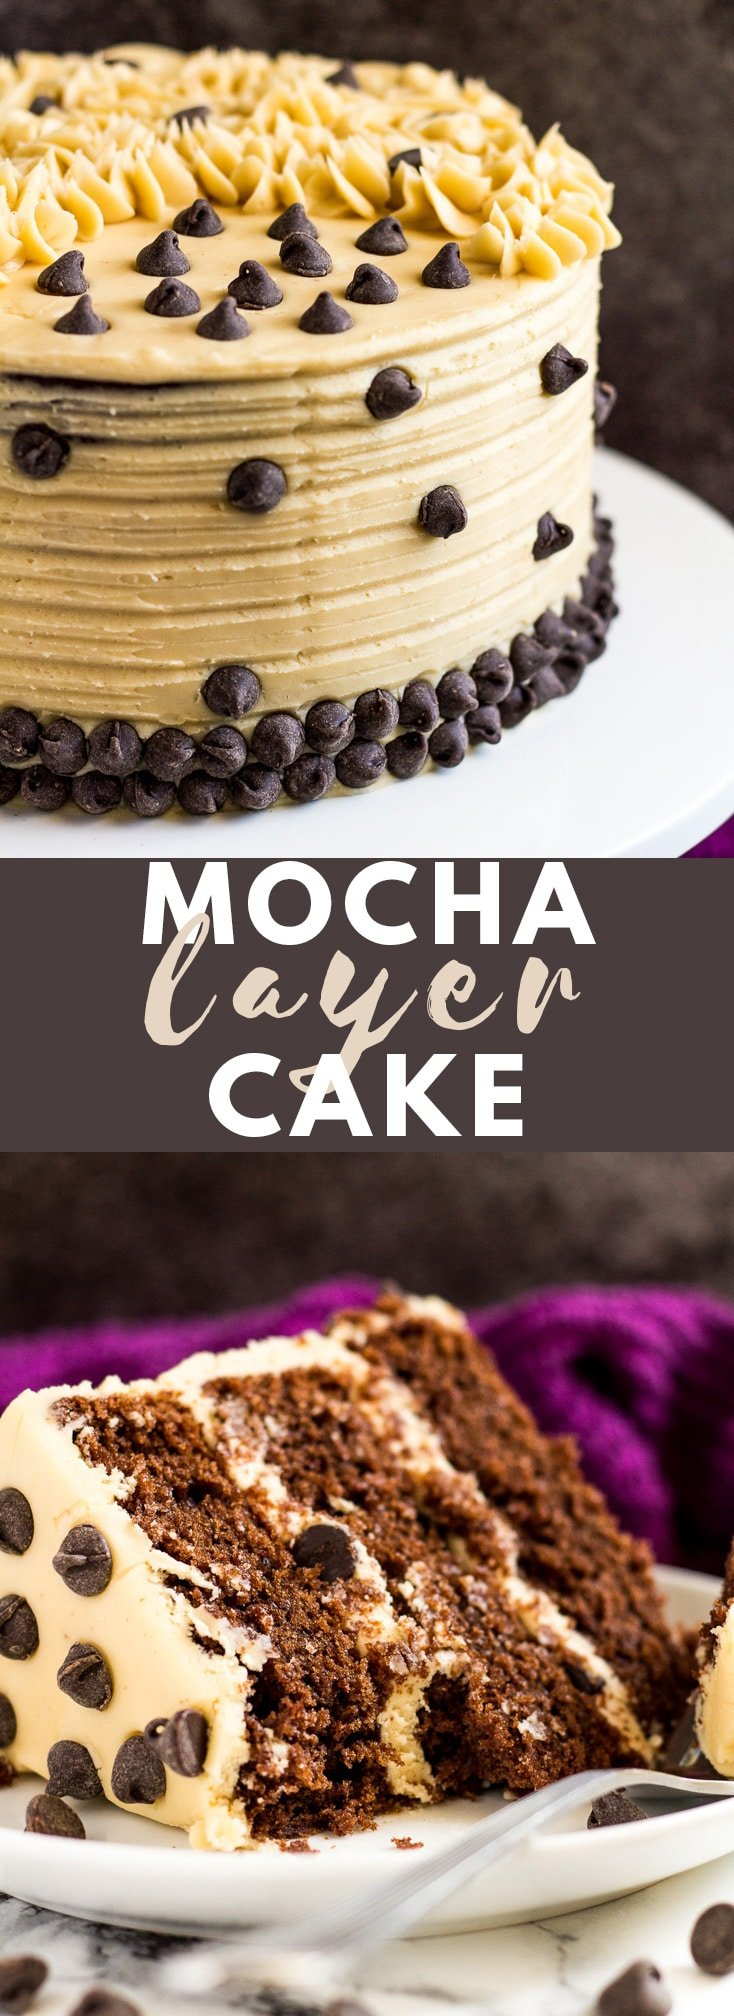 Mocha Layer Cake - Incredibly moist and fluffy chocolate layer cake infused with coffee, and frosted with a sweet coffee flavoured buttercream! #chocolate #mocha #cake #cakerecipes